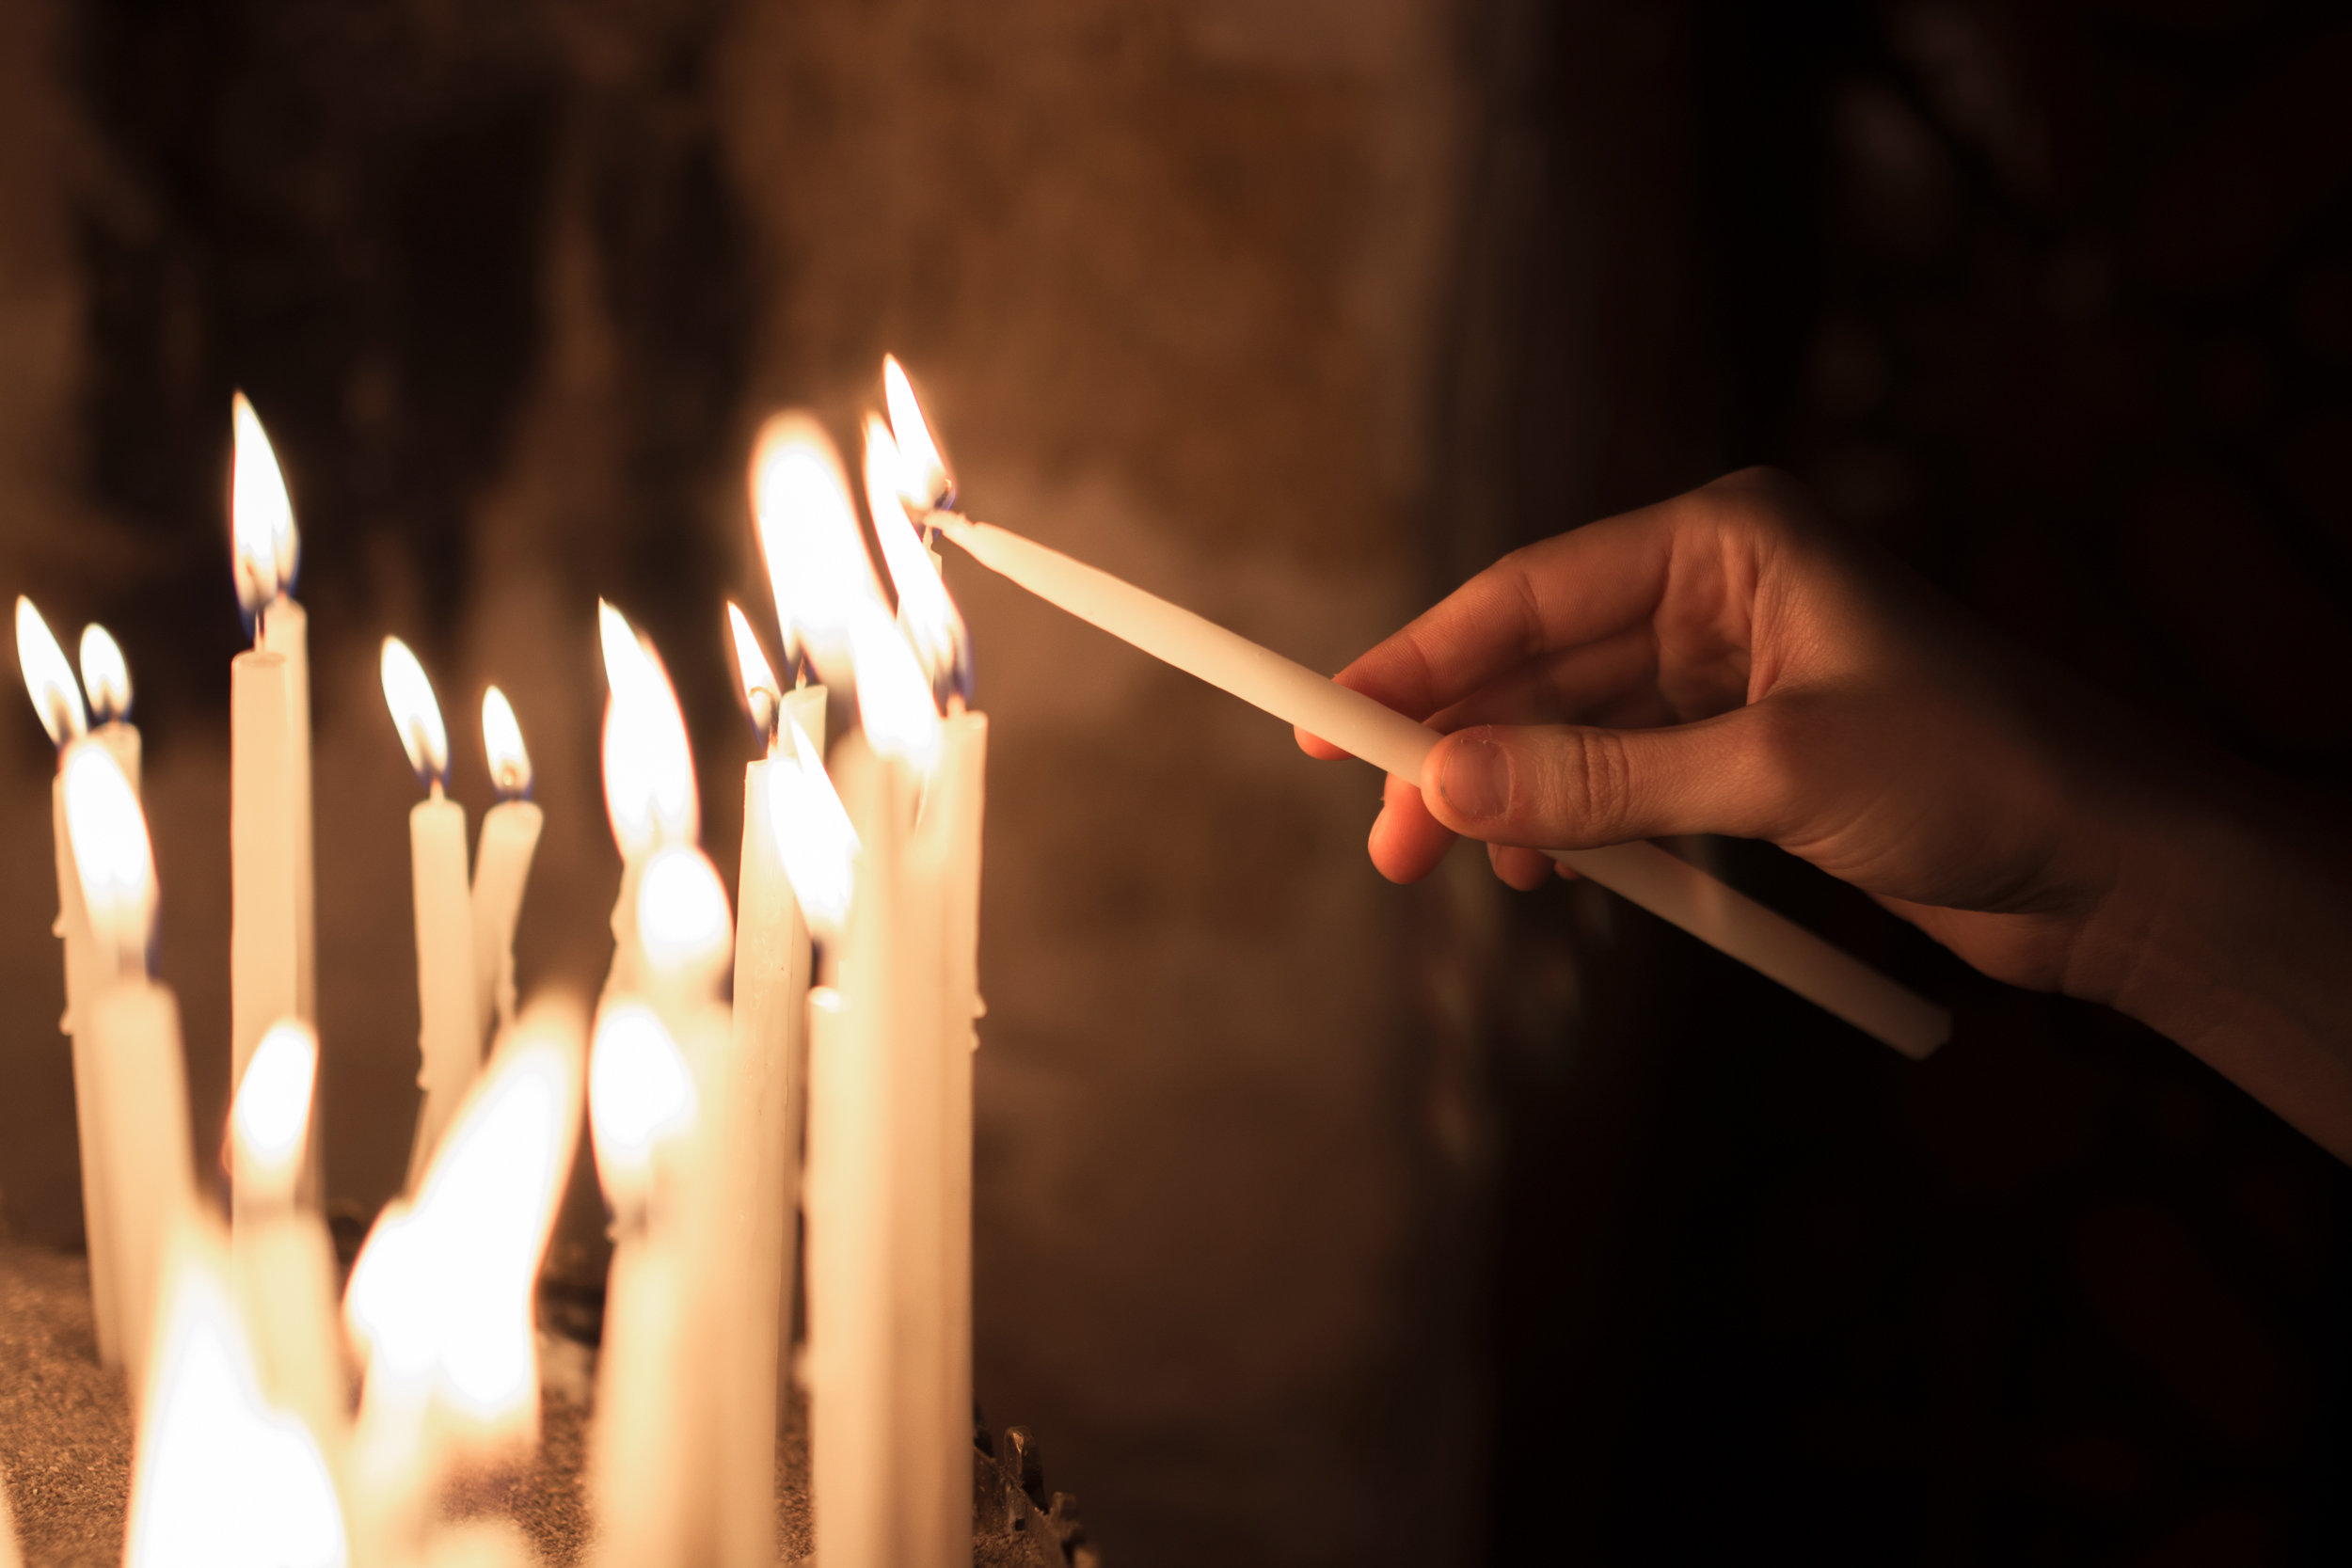 Lighting candles is a part of many rituals. (Shutterstock)